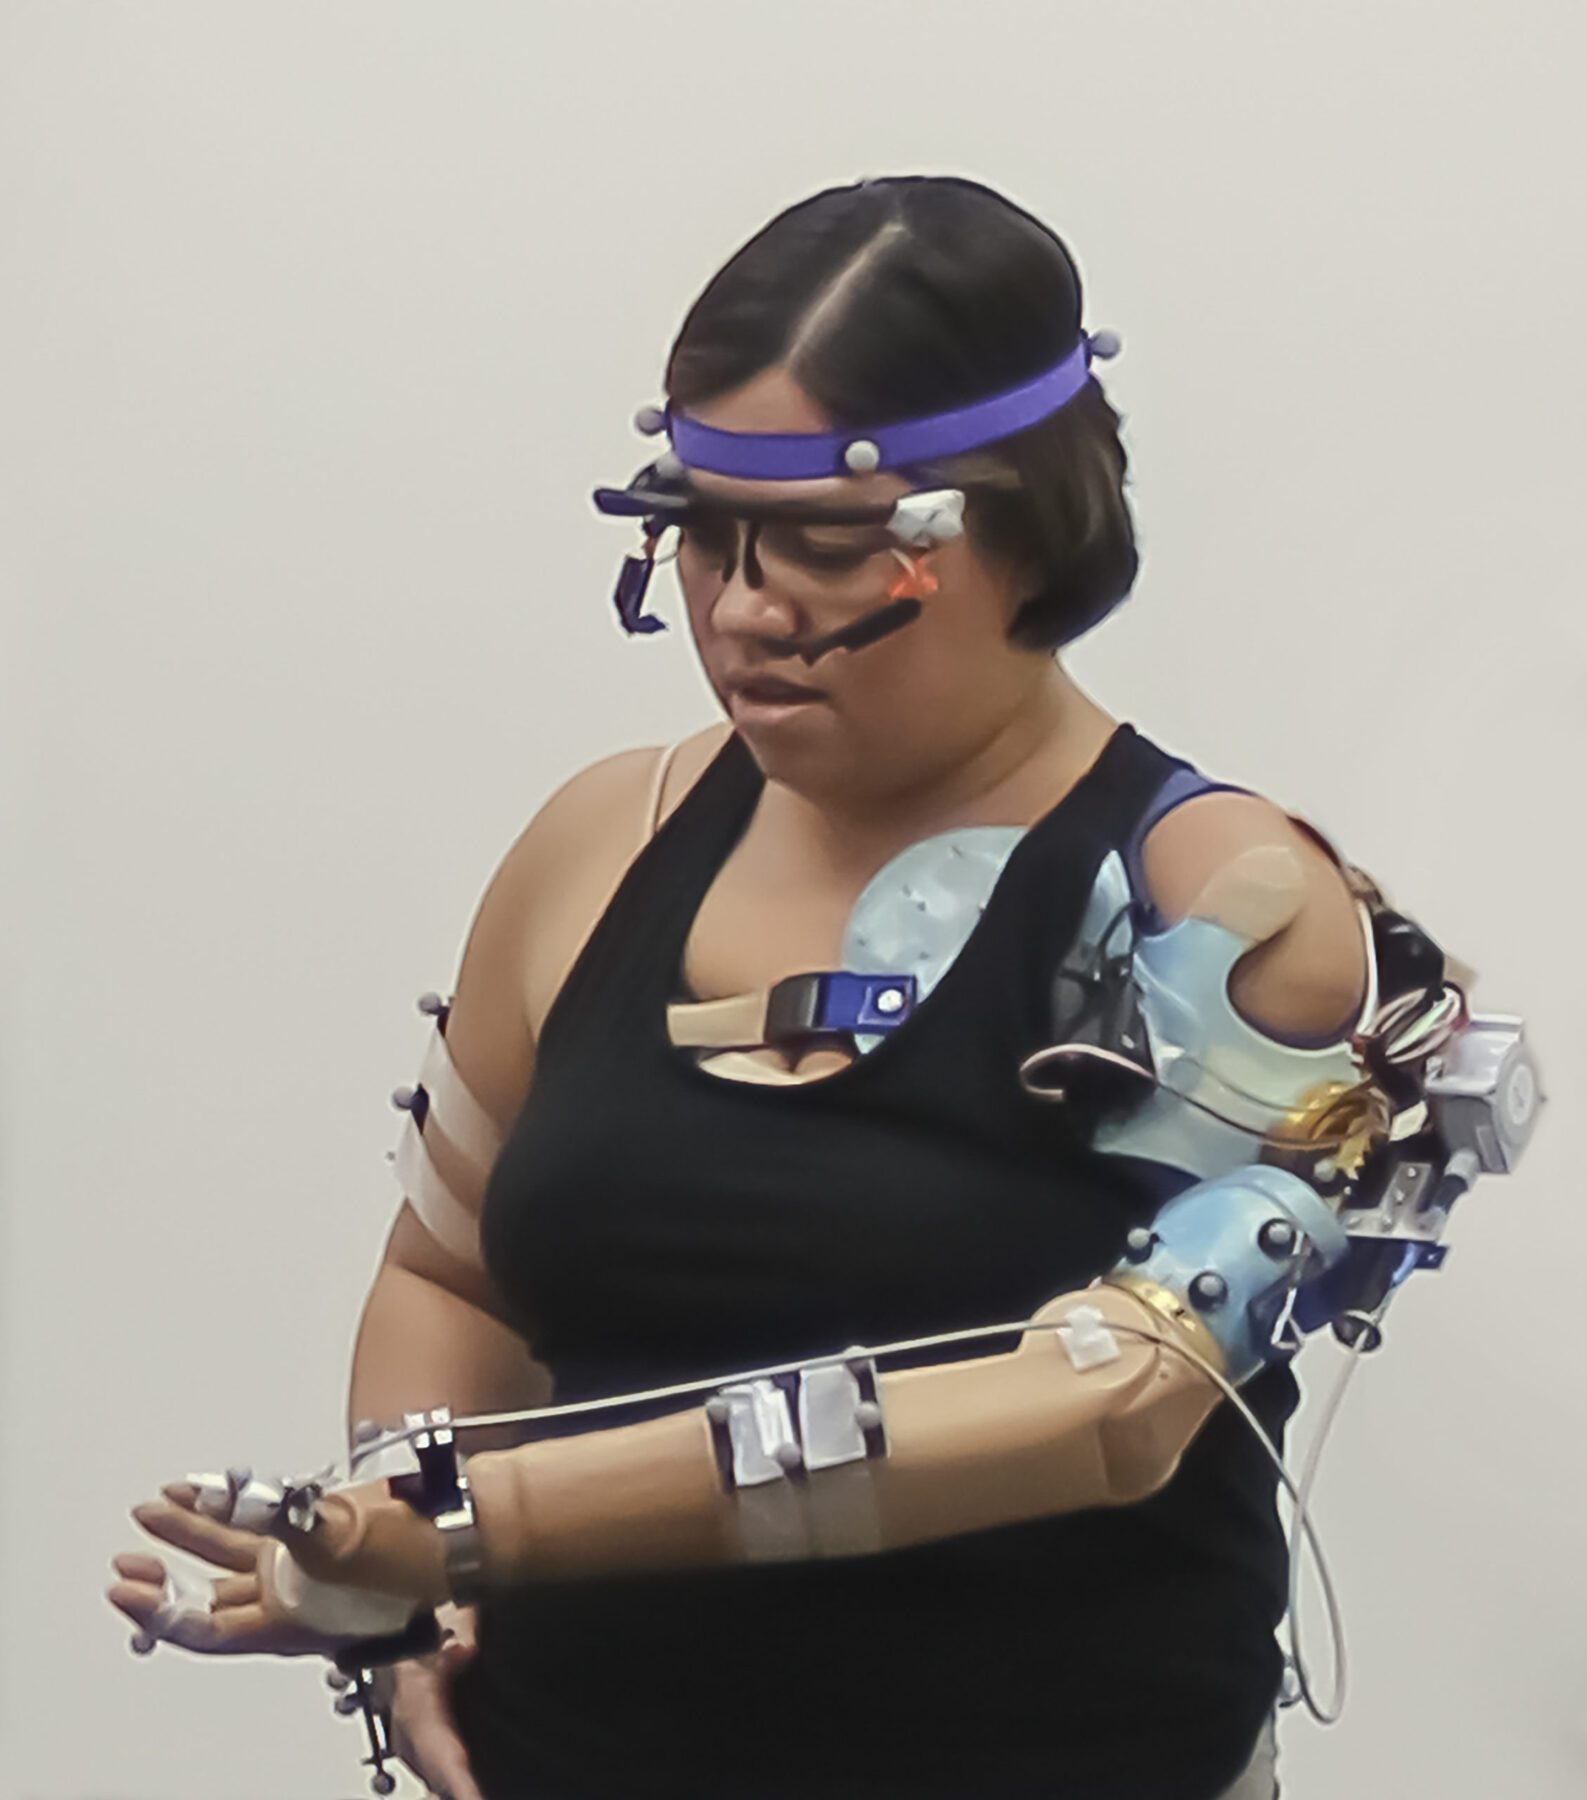 The advanced prosthetic arm feels grip movement sensation, touch on the fingertips, and is controlled intuitively by thinking. Reflective markers on users' arms and body help a computer see their movements in a 3D-environment, while glasses allow a computer to see exactly what they see.